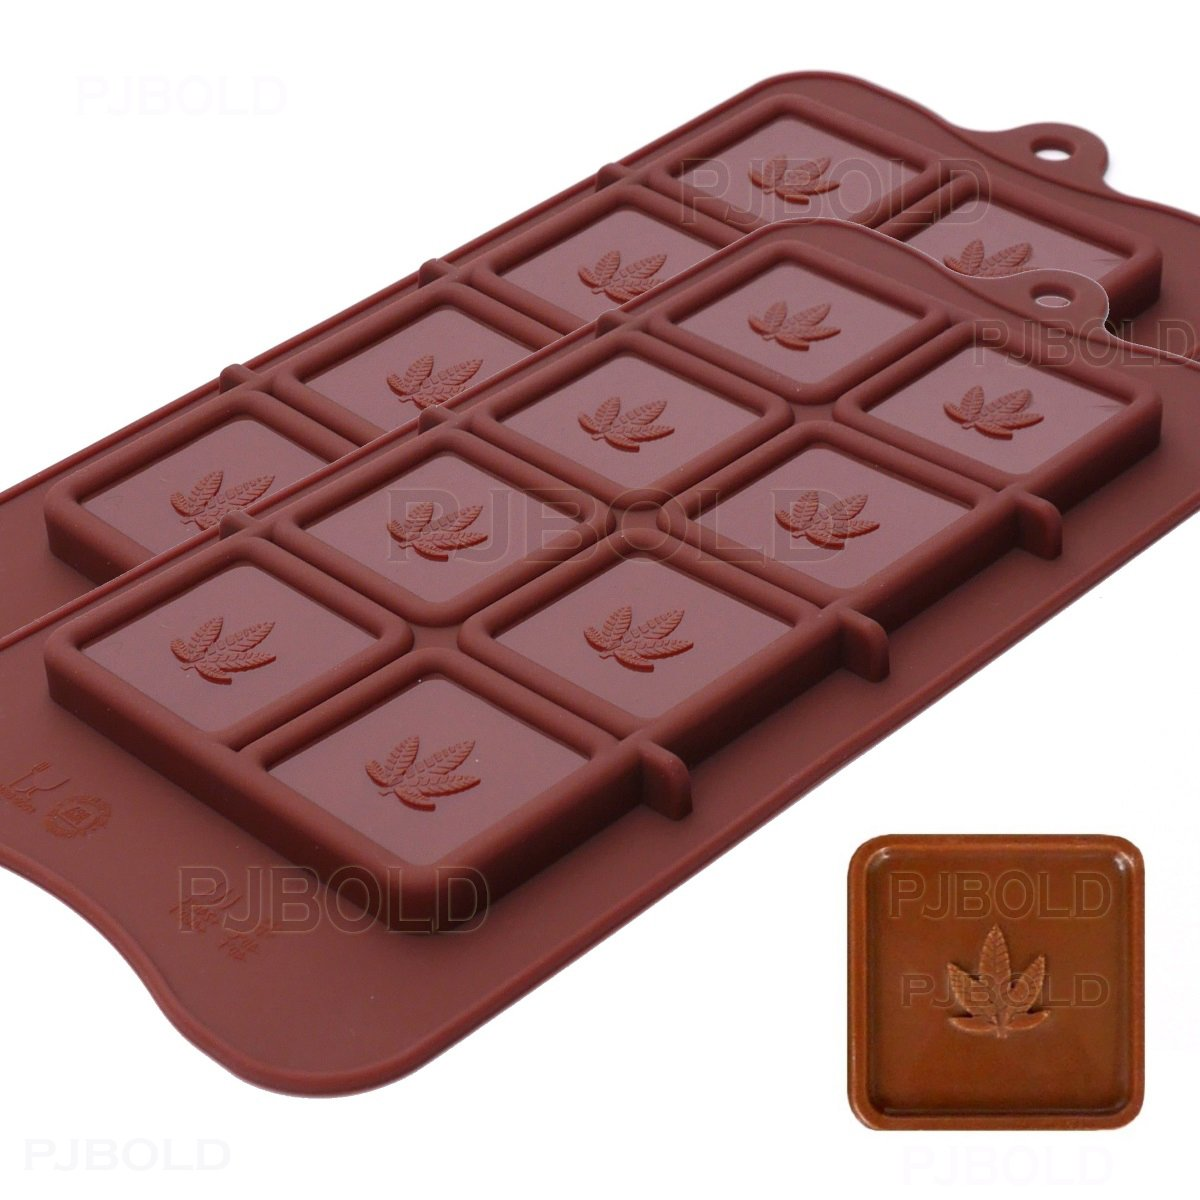 Marijuana Leaf Chocolate Bar Silicone Candy Mold Trays, 2 Pack by PJ Bold